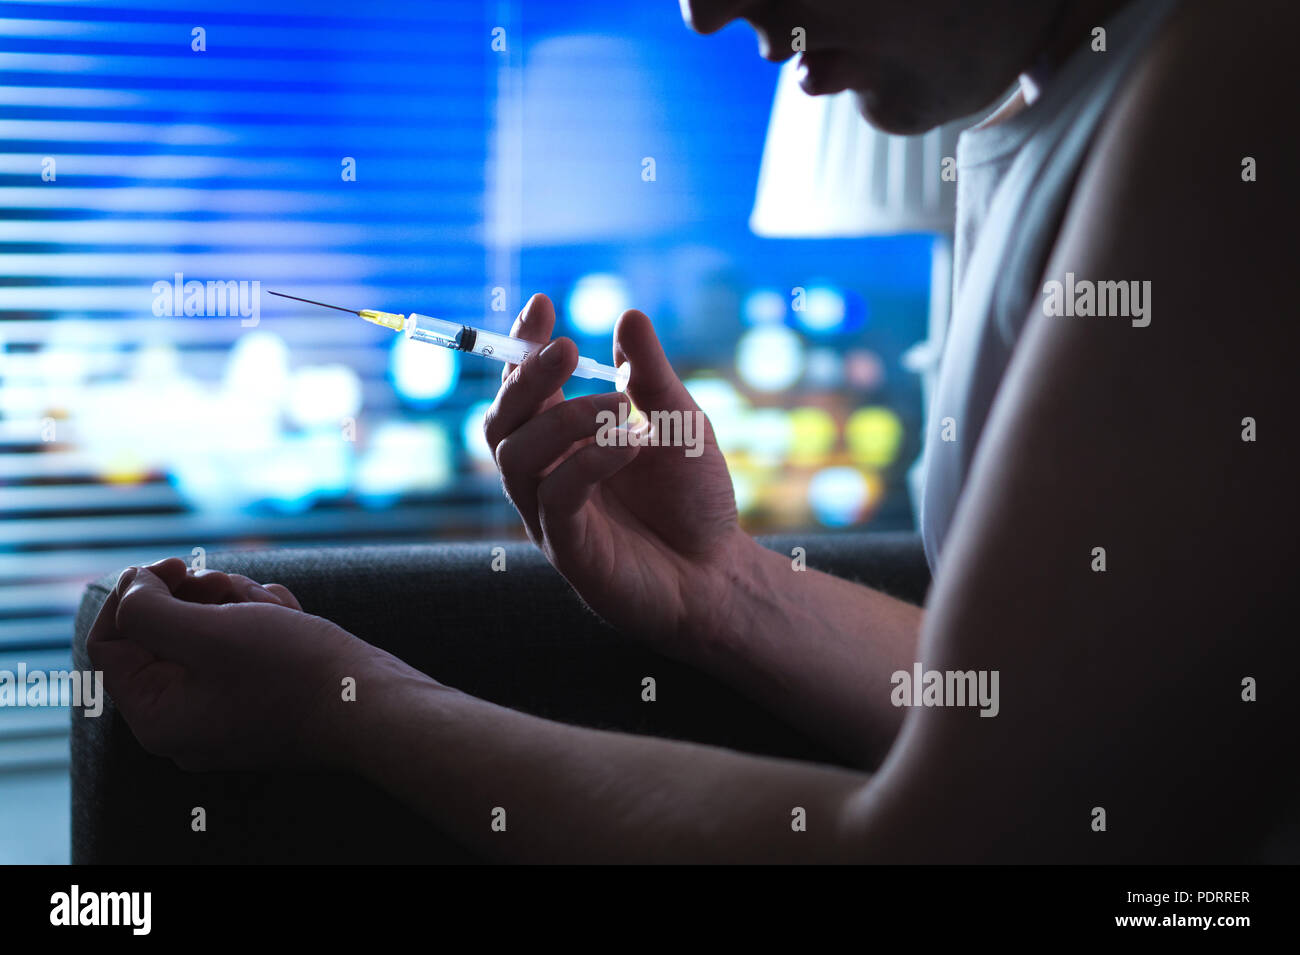 Heroin addict in dark late at night using drugs. Young man with bad drug problem using dirty needle. Dramatic addiction, overdose and substance abuse. - Stock Image